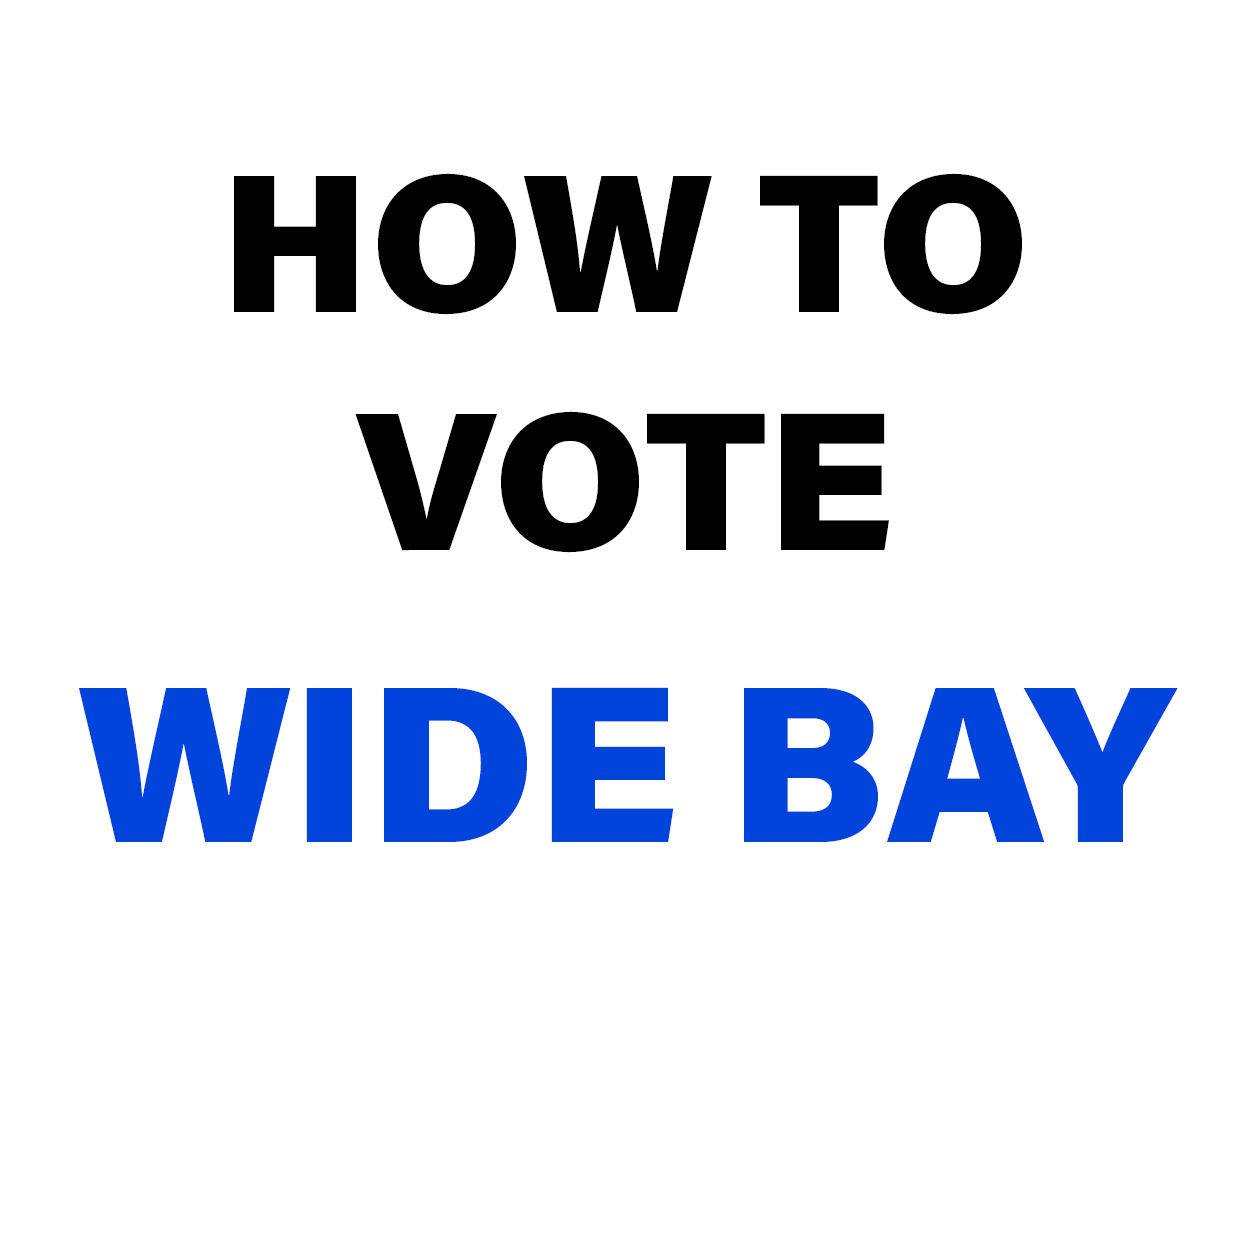 WIDE BAY.png